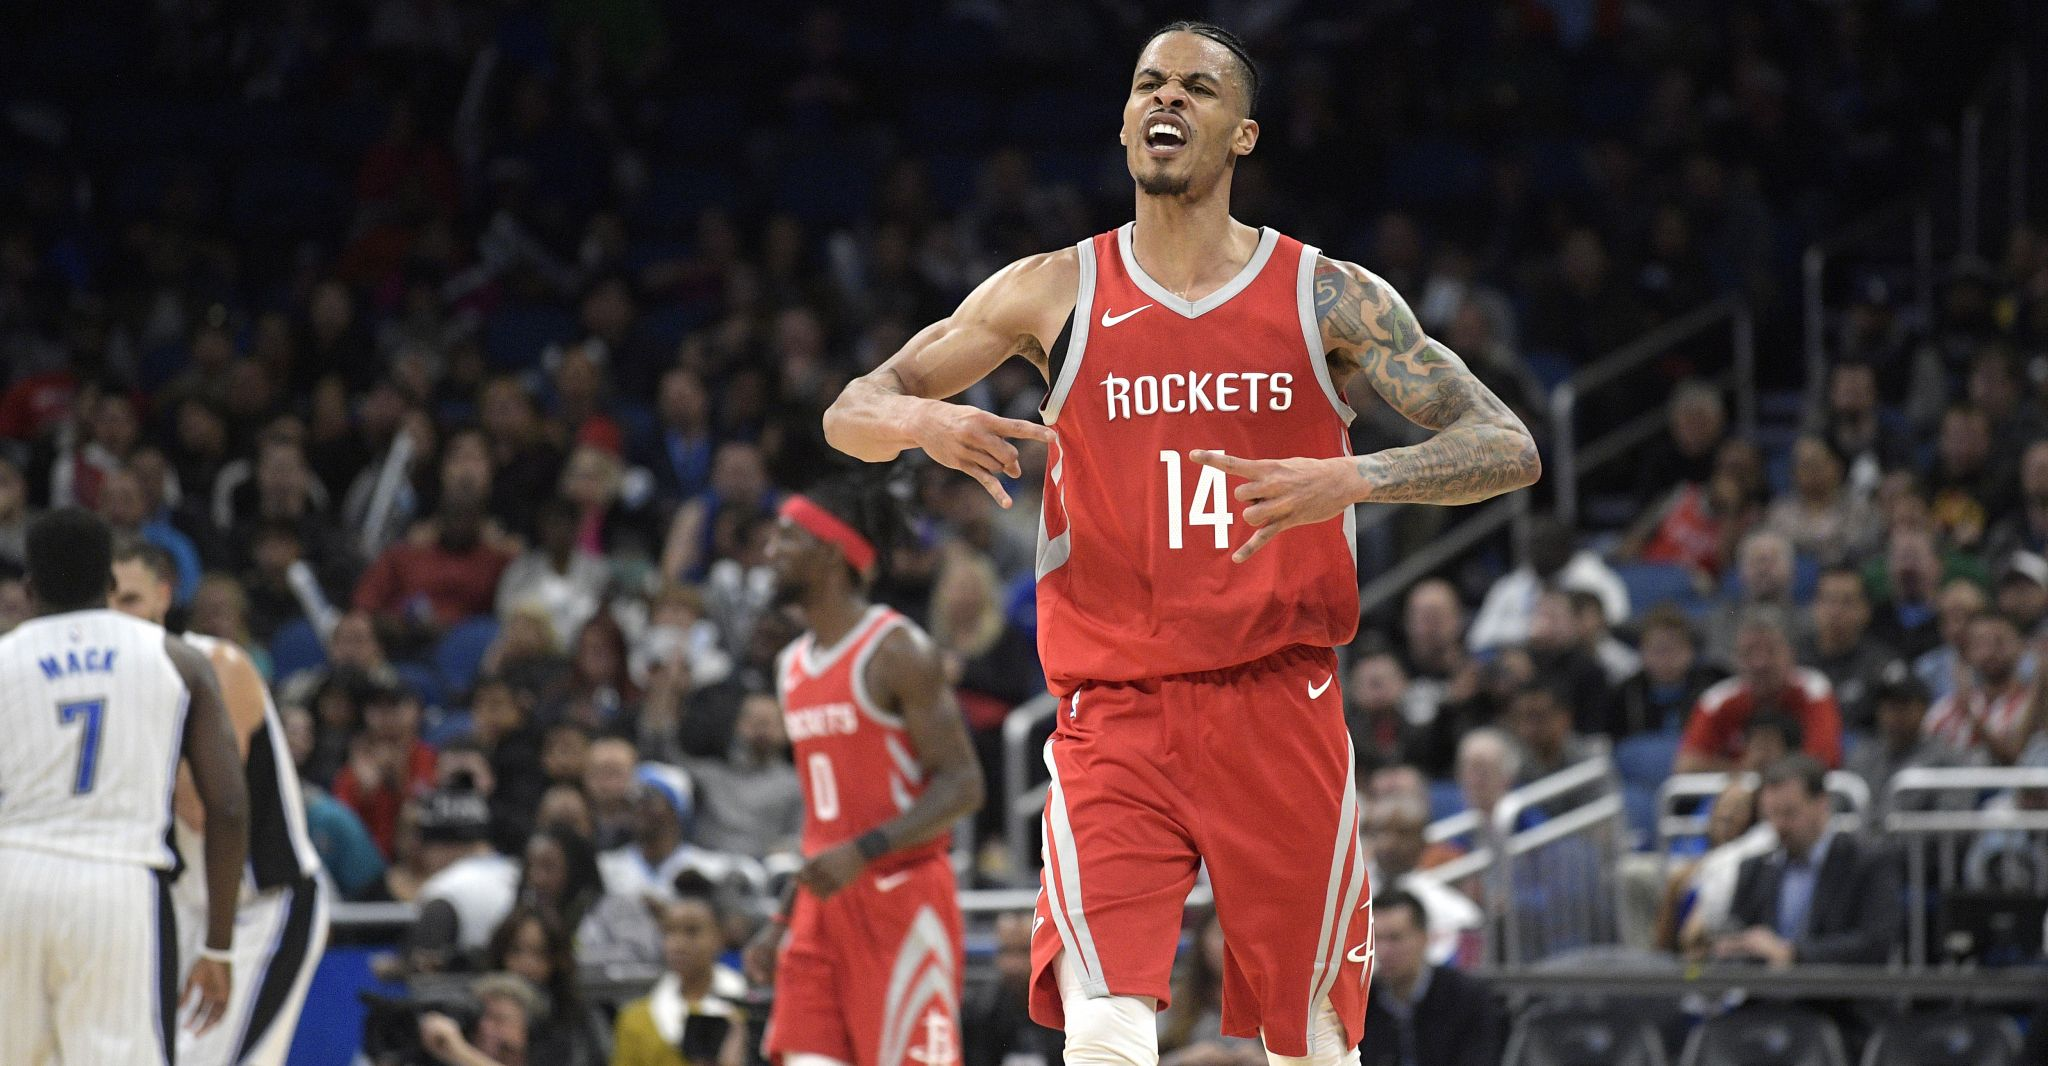 Rockets Open 2018 With Rout Of Magic